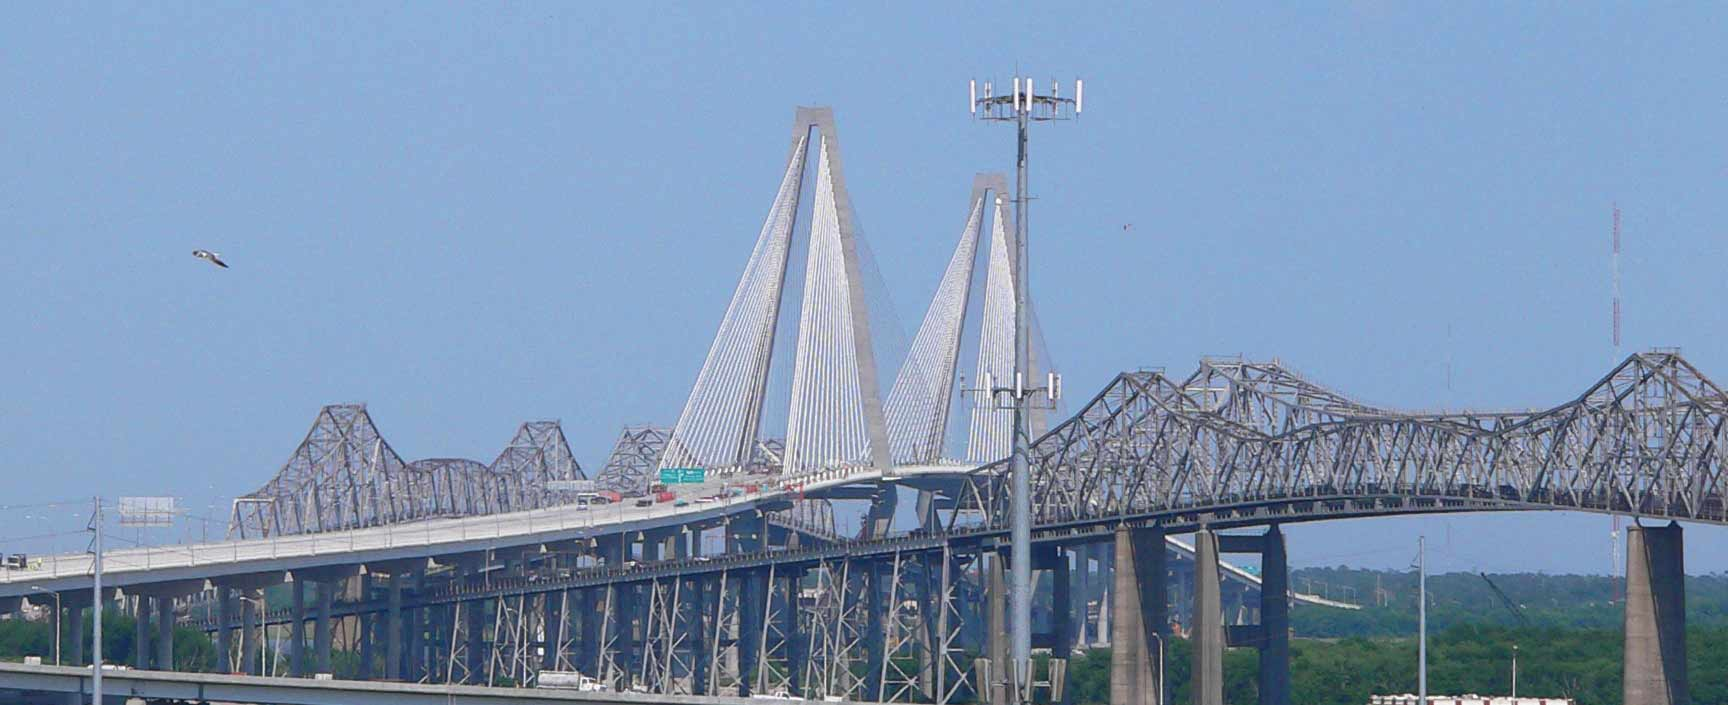 Old and New Ravenel Bridges in Charleston